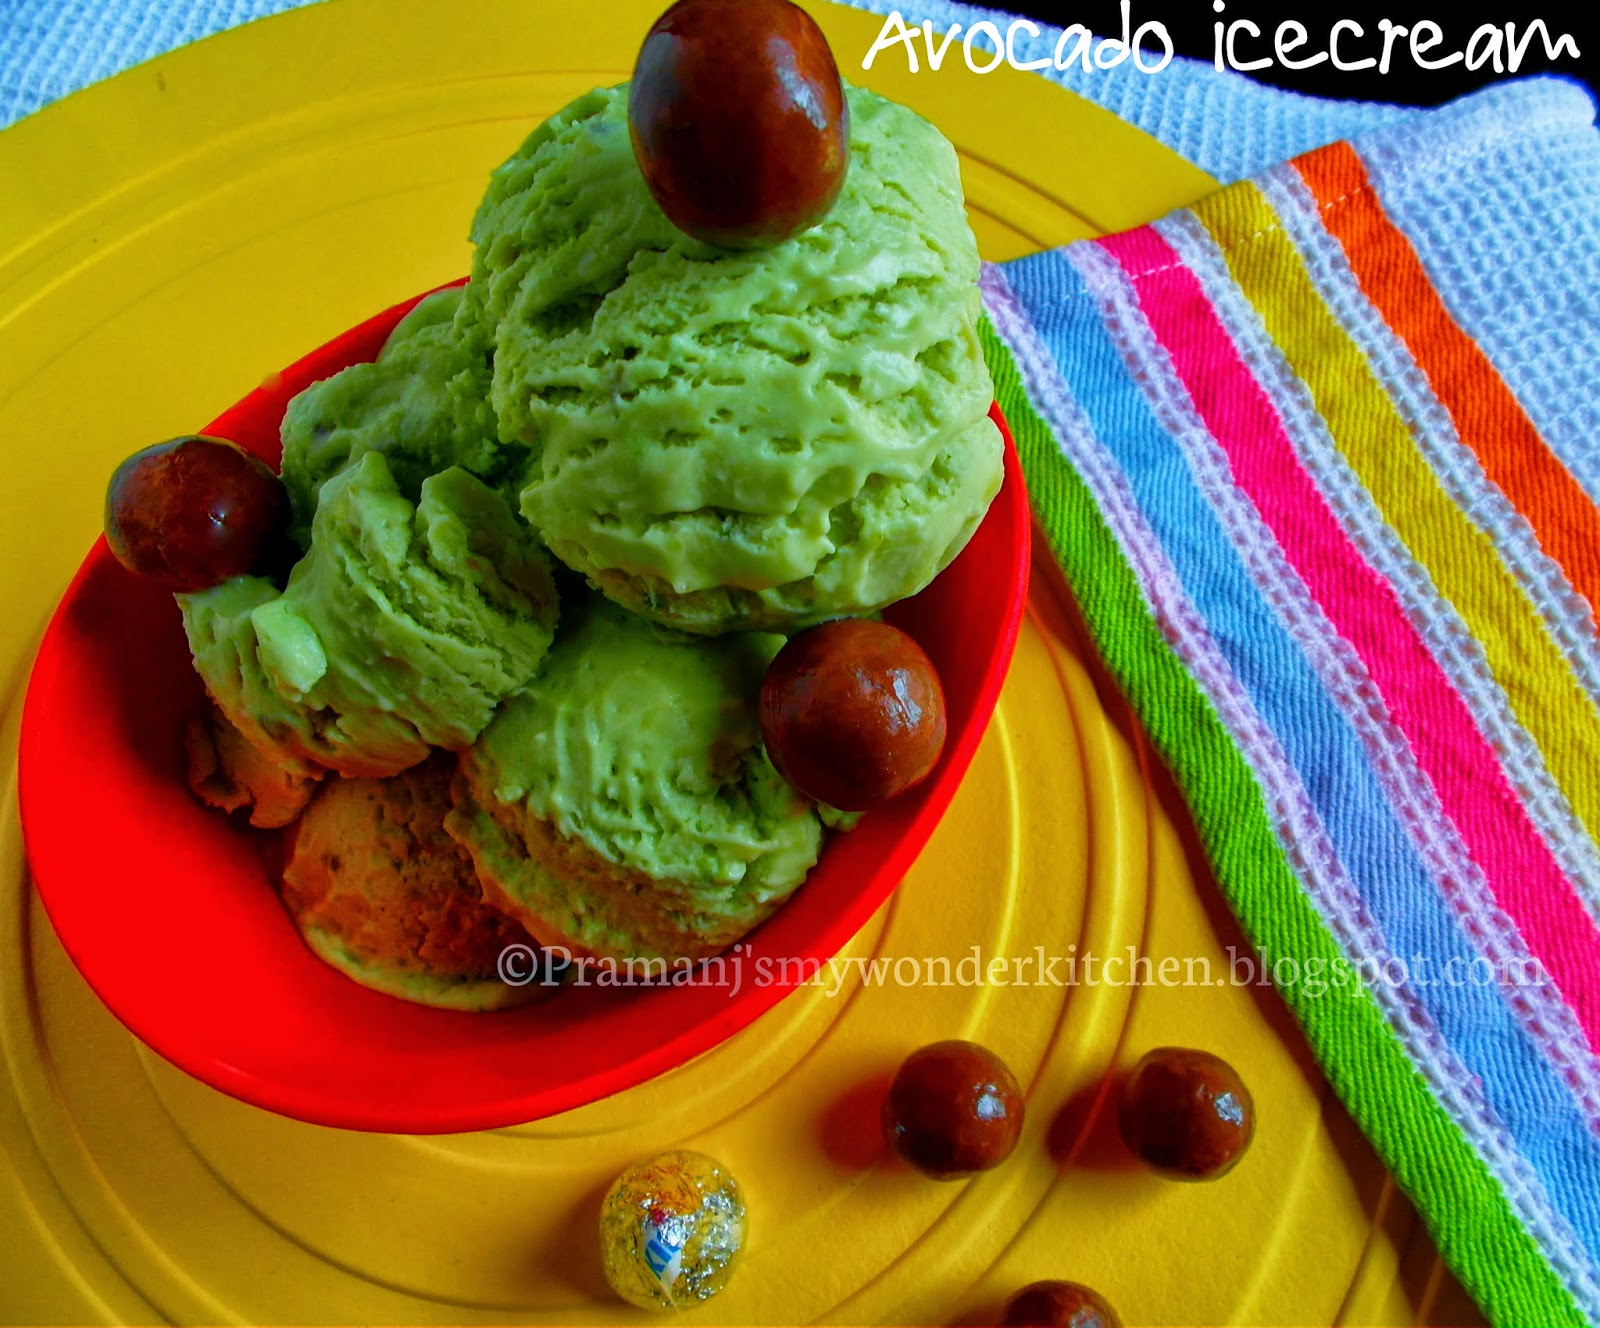 avocado_homemade_icecream